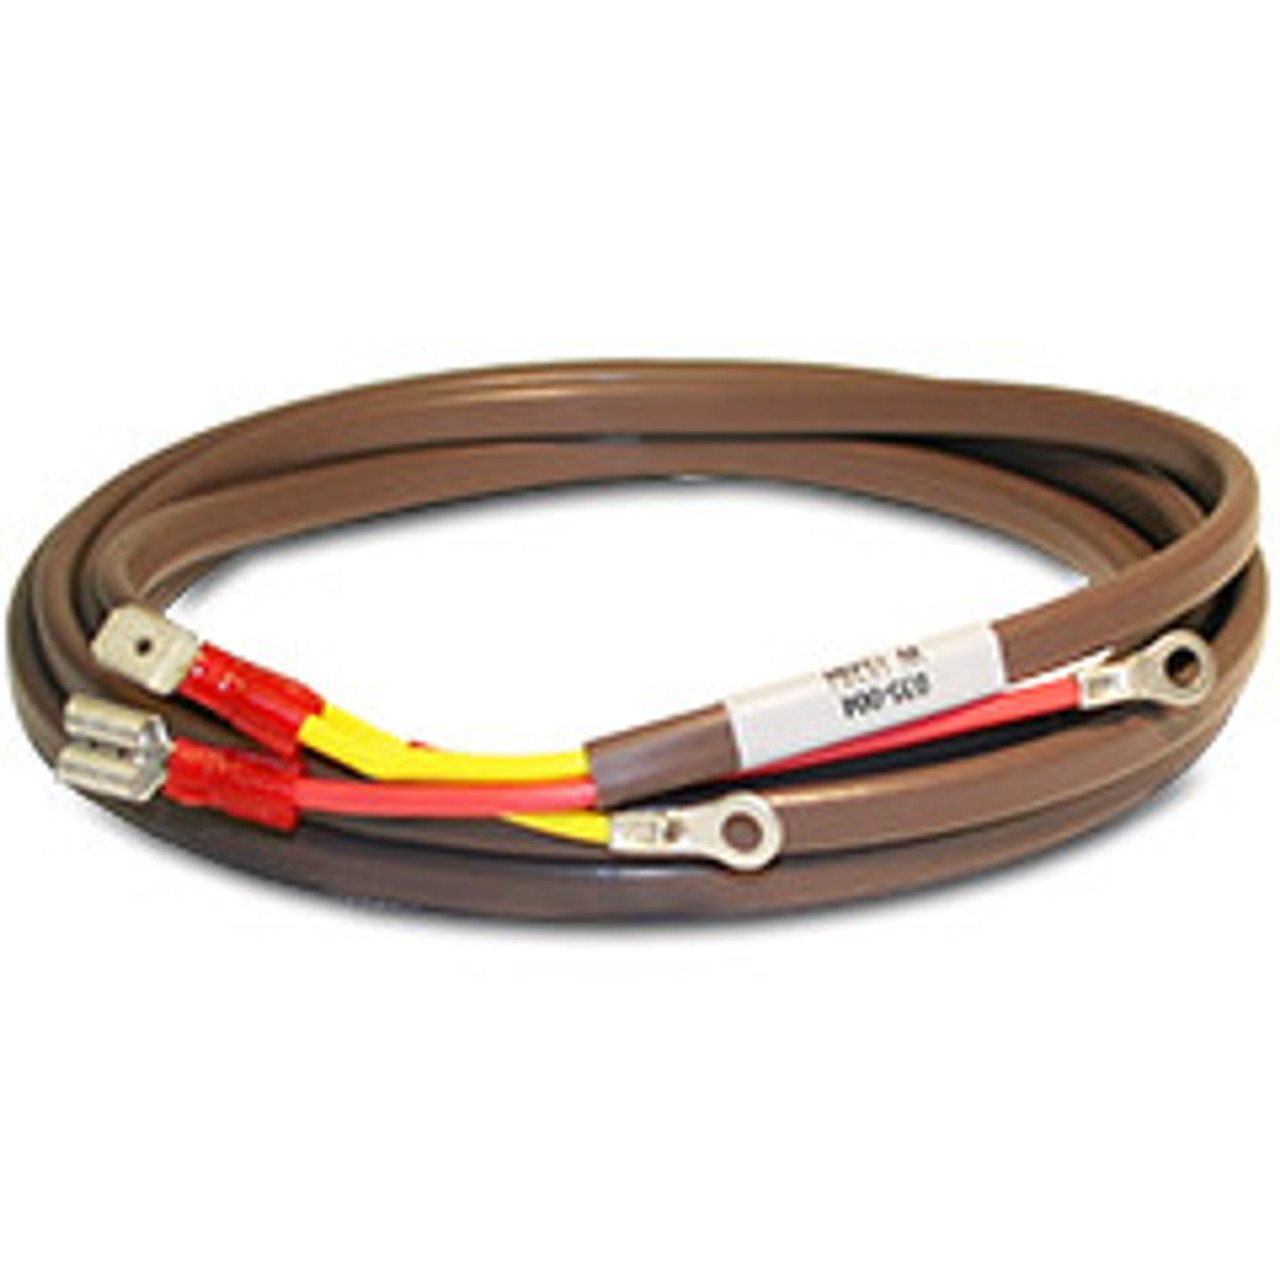 """Hewitt Industries Extension Wire, Part #035-013-12, K-Type 12 ft. for 010-21X Series Pyro, 250° Sweep.  Required to provide connection between Thermocouple and your Pyrometer. Hewitt offers this twelve (12) foot long, """"K-Type"""" Extension Wire Set.  Two Color-coded #18 gauge wires, a red wire (-) and a yellow wire (+). At one end both wires are High-Temp #6 round terminal lugs. Opposite end, Has spades to match 010-21X Series Instruments.  We have several lengths available, Can also supply a special length, matched to your requirement, Please contact us for quote.  We have several lengths available, Can also supply a special length, matched to your requirement, Please contact us for quote."""